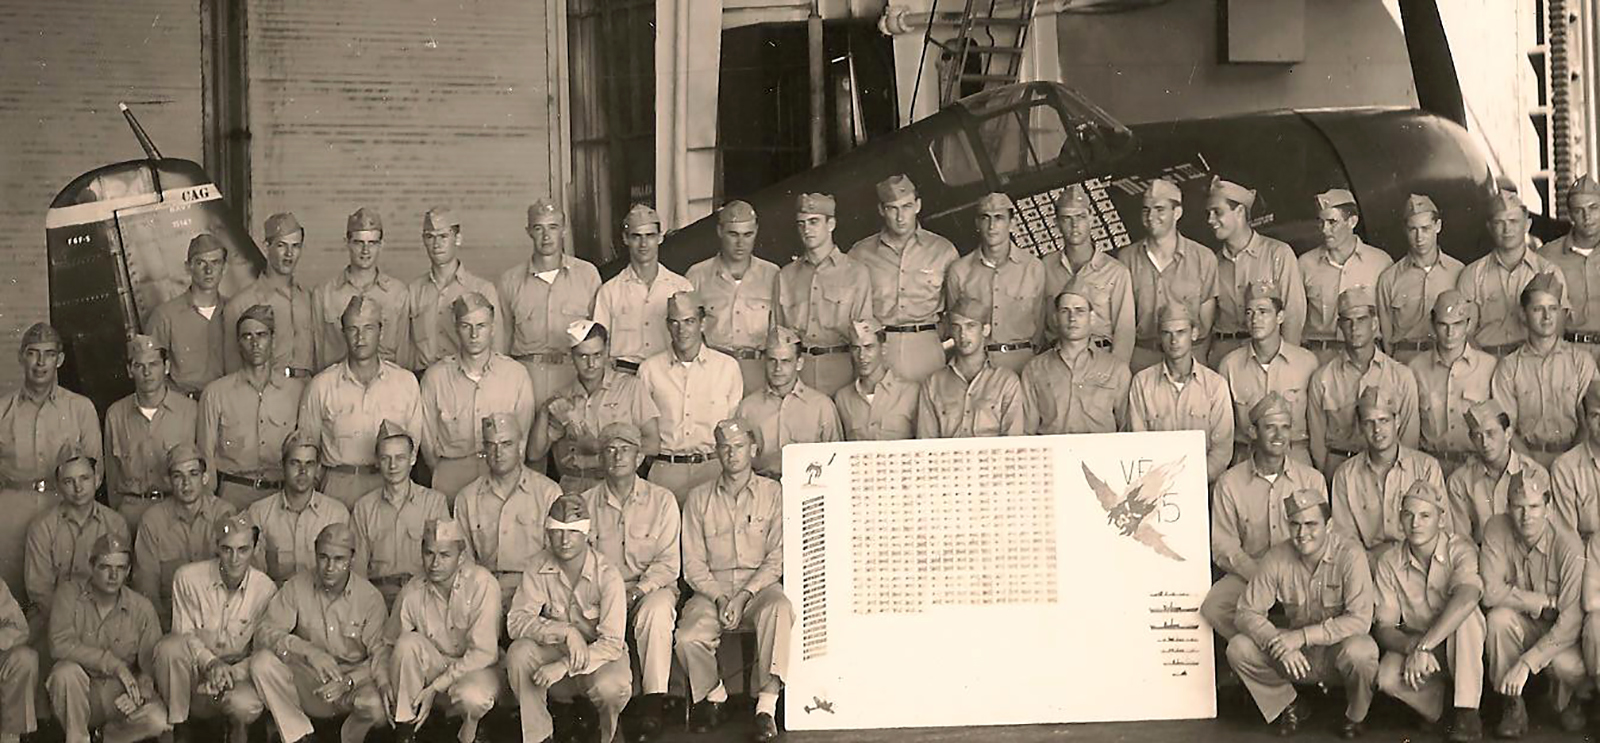 CAG 15 Hellcat BuNo 70143 Dave McCampbell the navy's top ace (seated to the right of the sign) aircraft was lost in Dec 1944 01